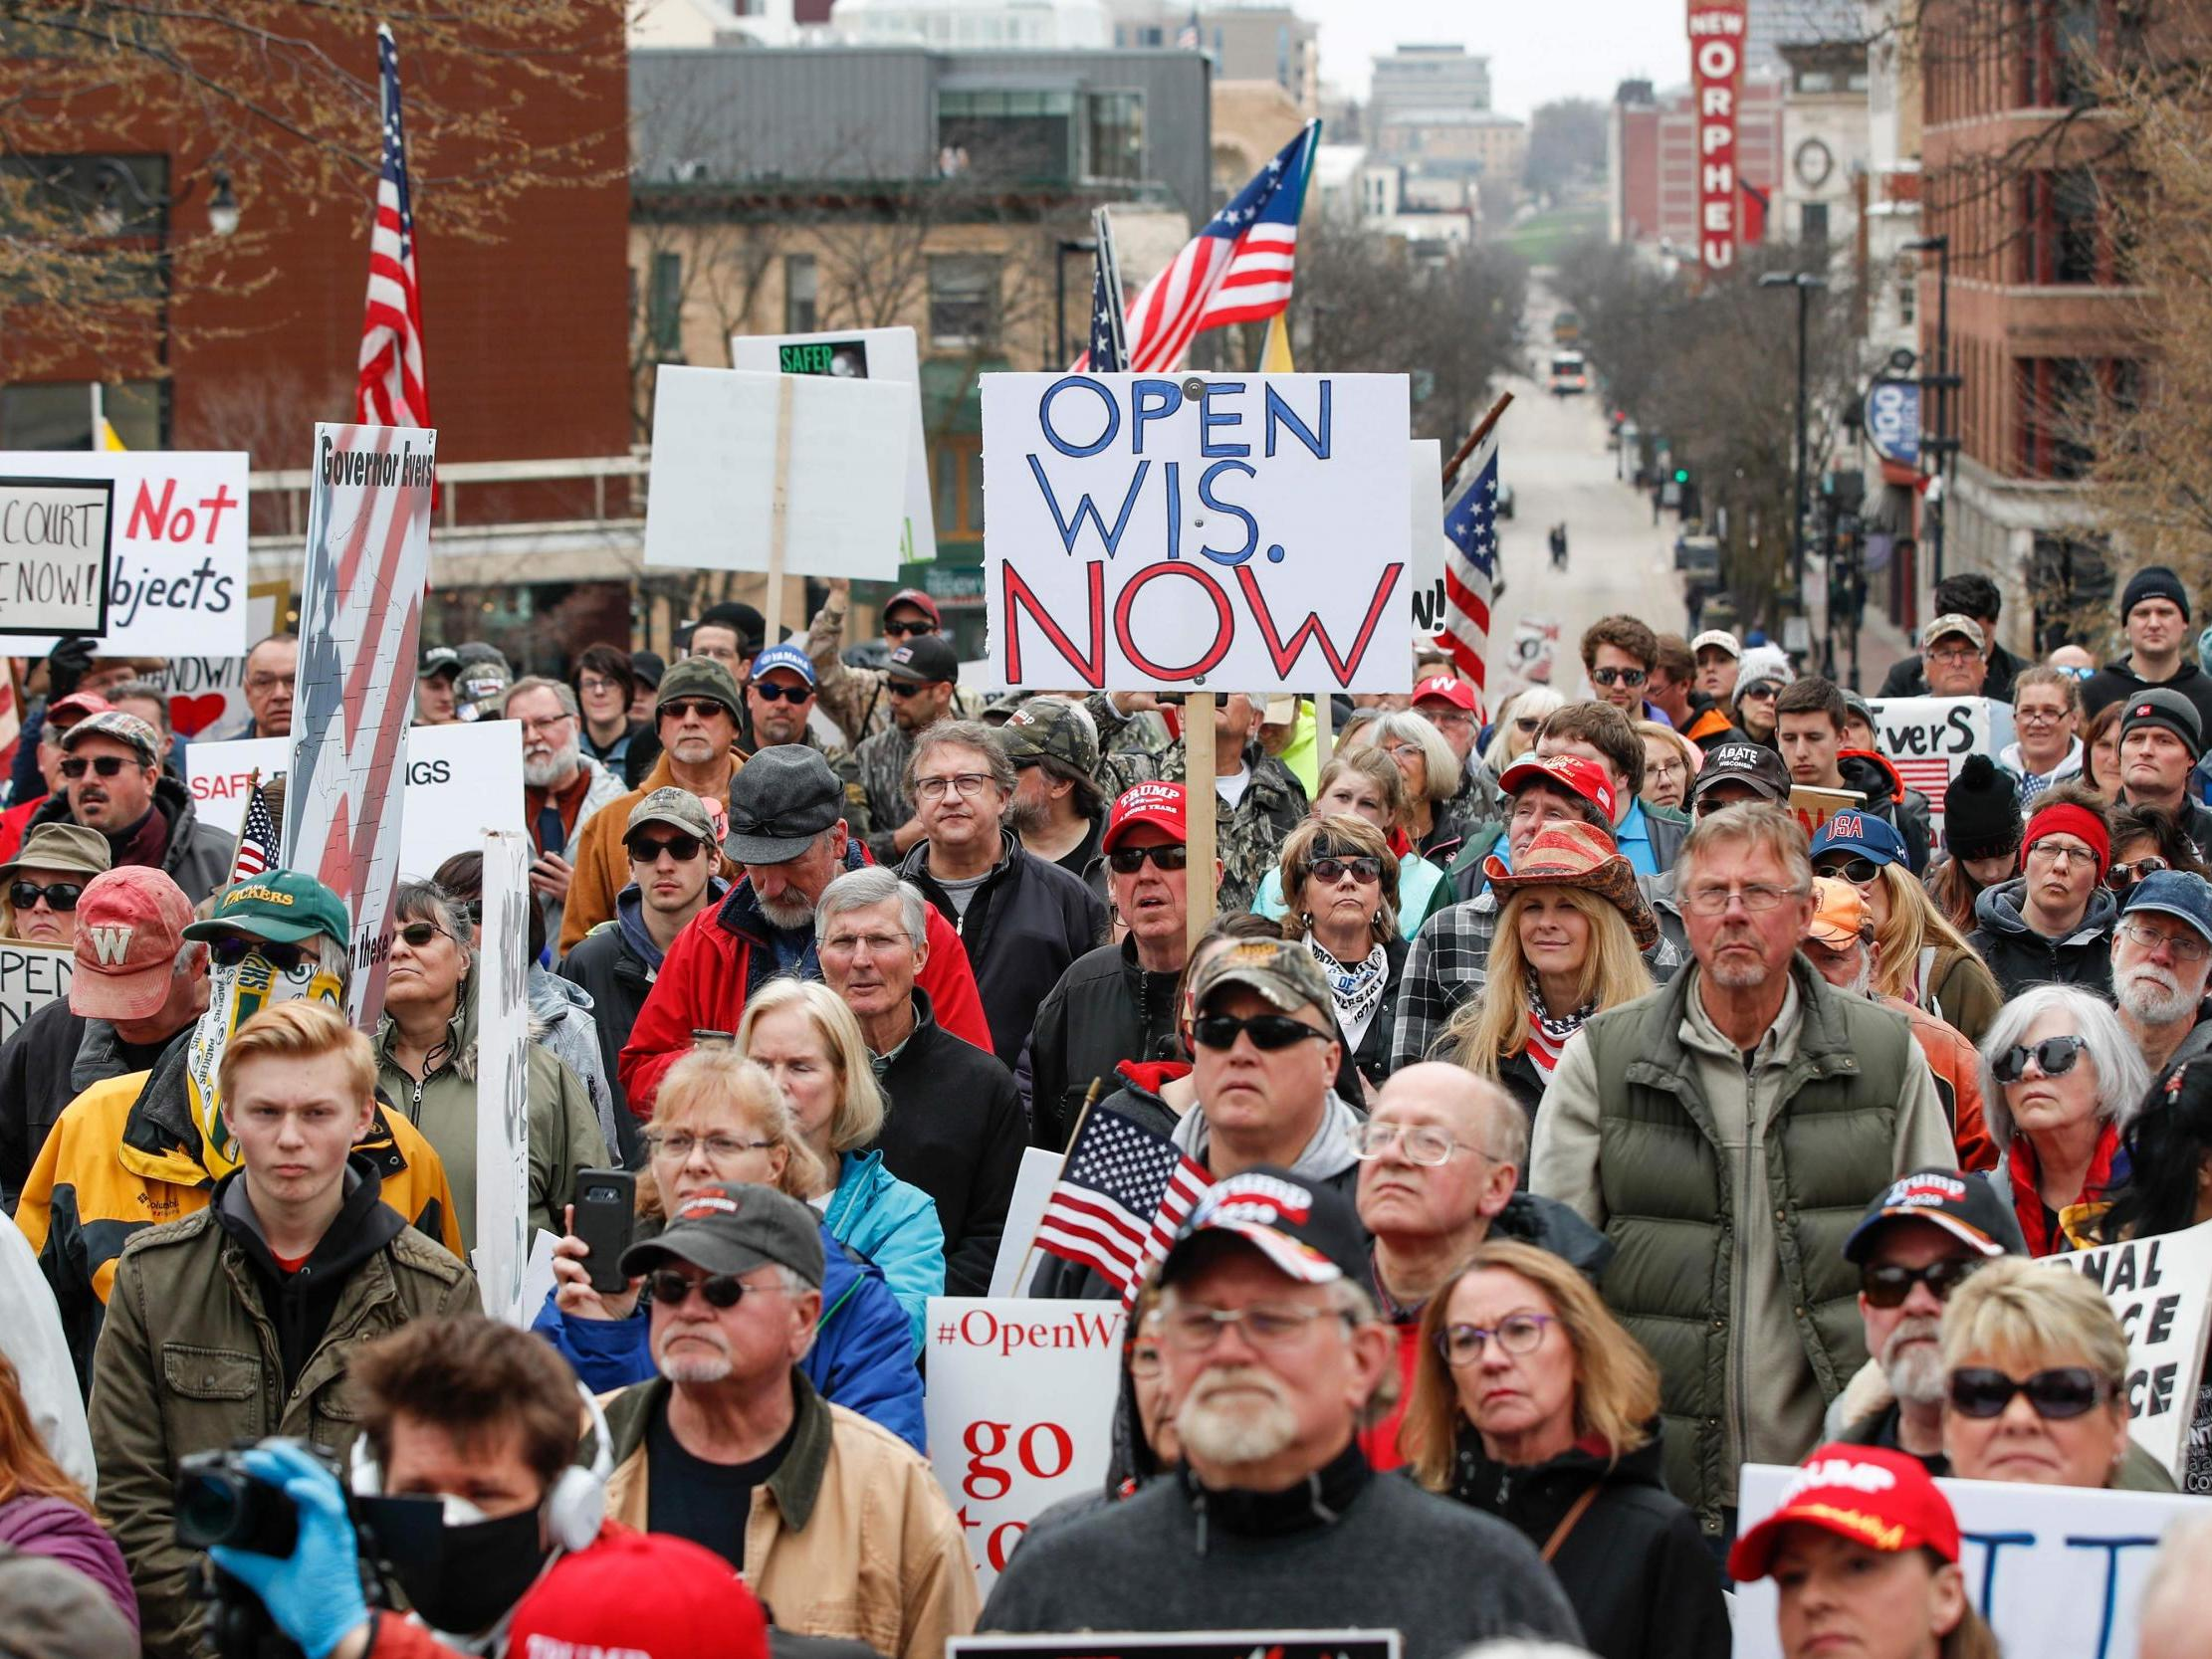 <b>72 people test positive for coronavirus after anti-lockdown protest in Wisconsin</b>